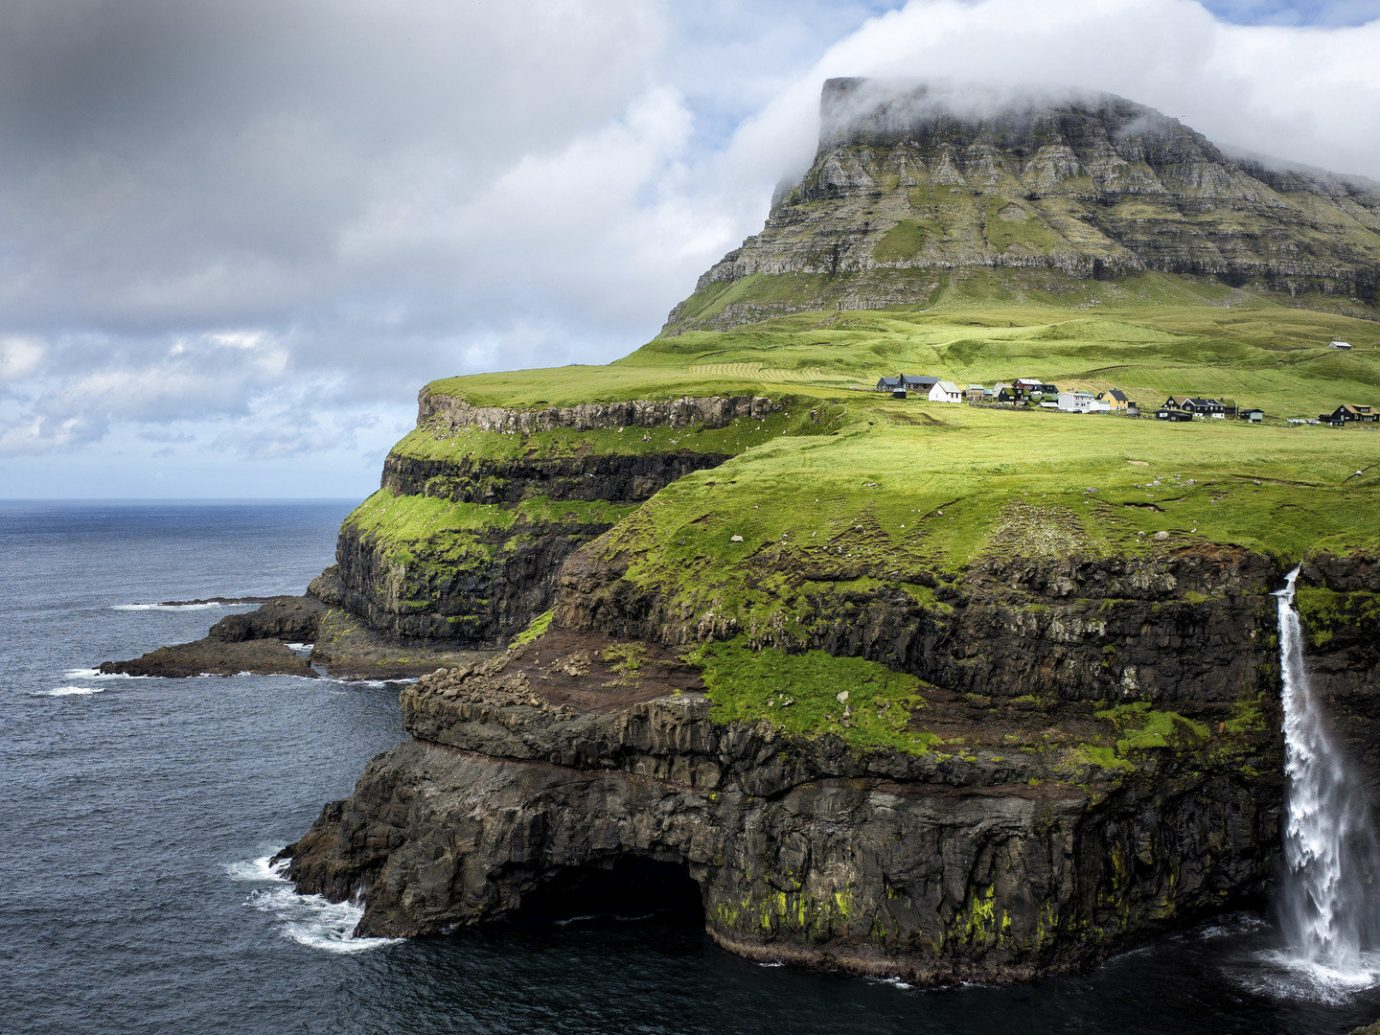 Faroe Islands Japan Jordan Michigan Montenegro Offbeat Oregon Patagonia Travel Tips Trip Ideas Nature sky outdoor mountain water rock Waterfall geographical feature landform Coast body of water cliff Sea Ocean terrain islet landscape cape Island bay fjord cove hillside